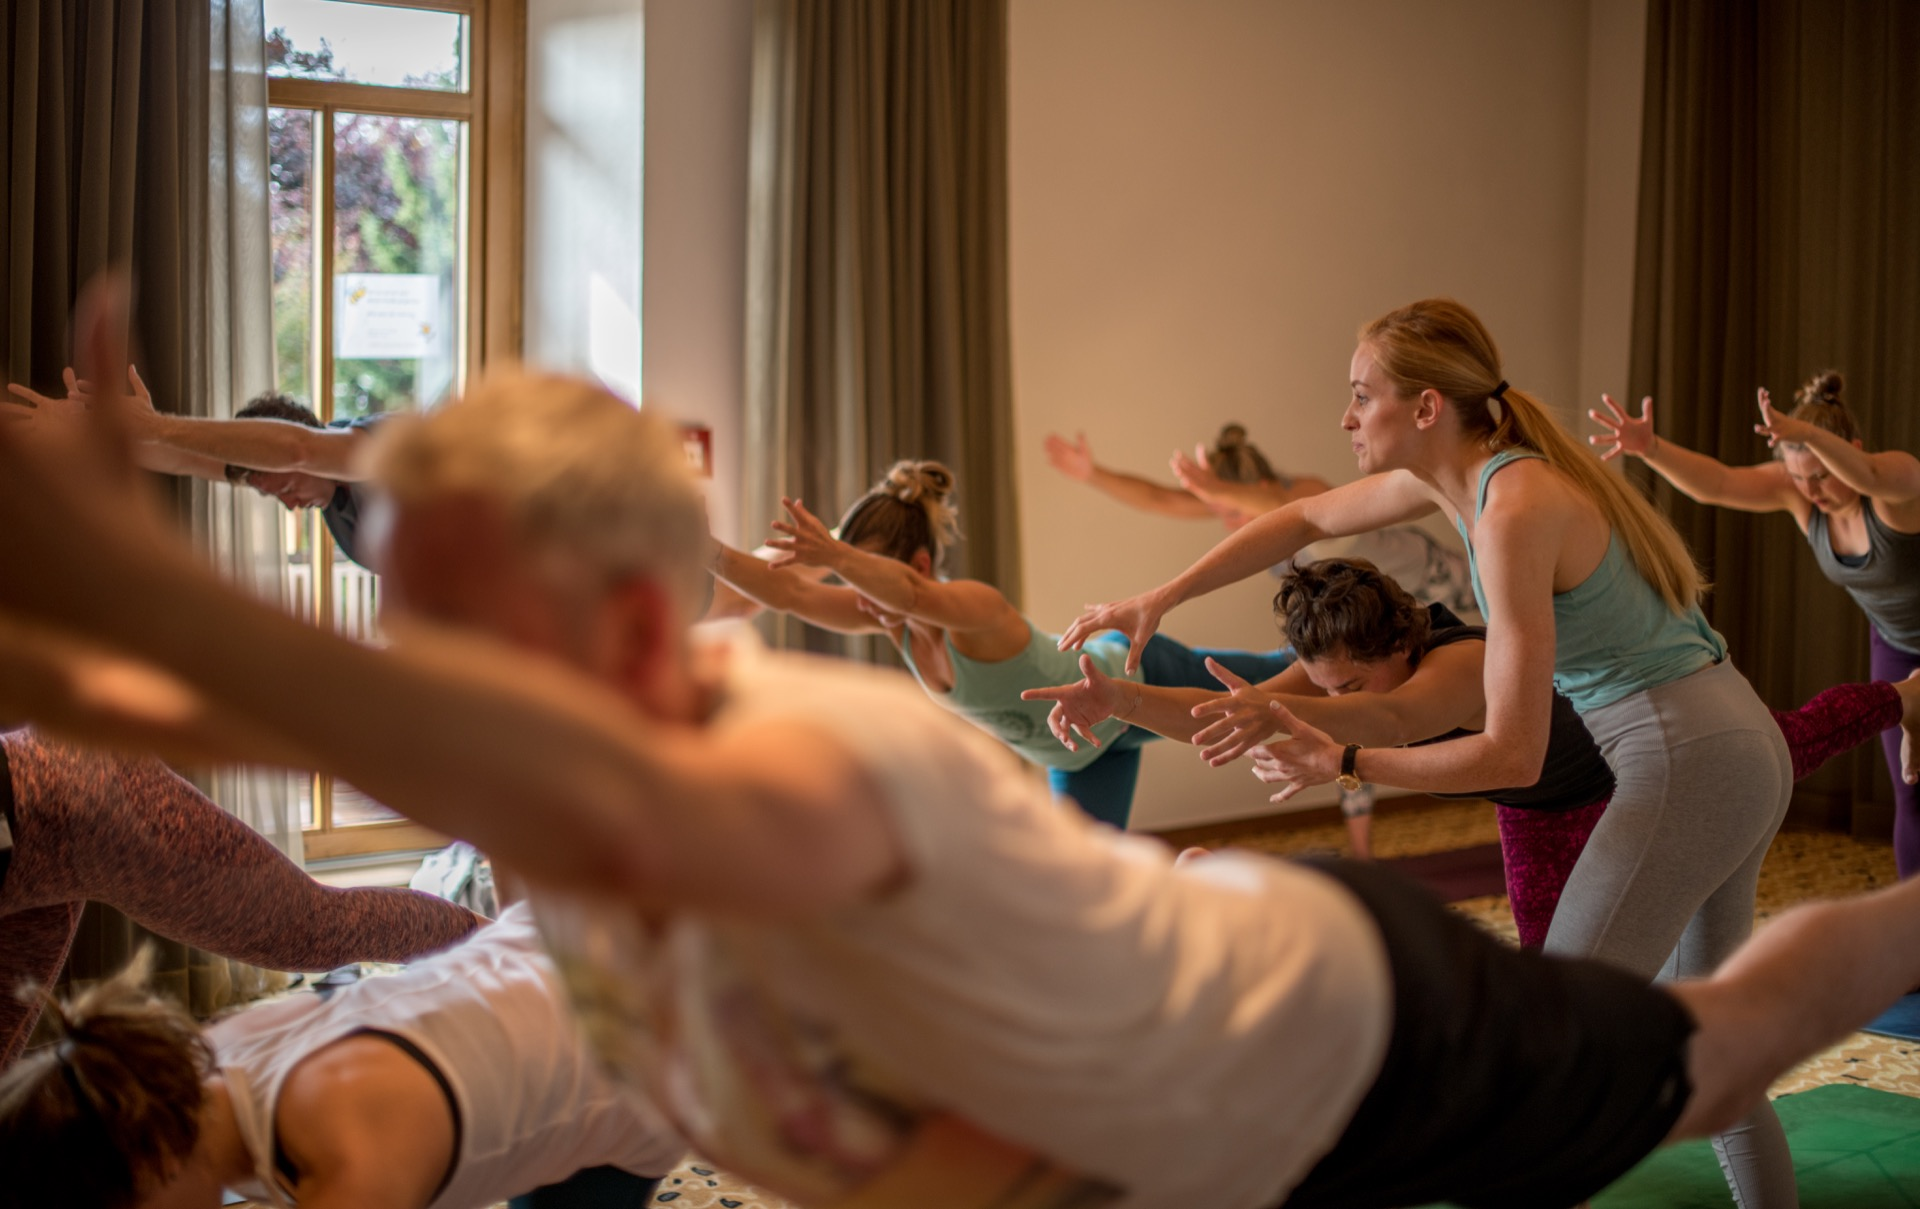 Hie-Kim-Friends-2019-Yoga-Retreat-Alina-Matis-Photography-092 - Hie Kim Yoga - Yoga Retreat - Yoga Workshops und Reisen